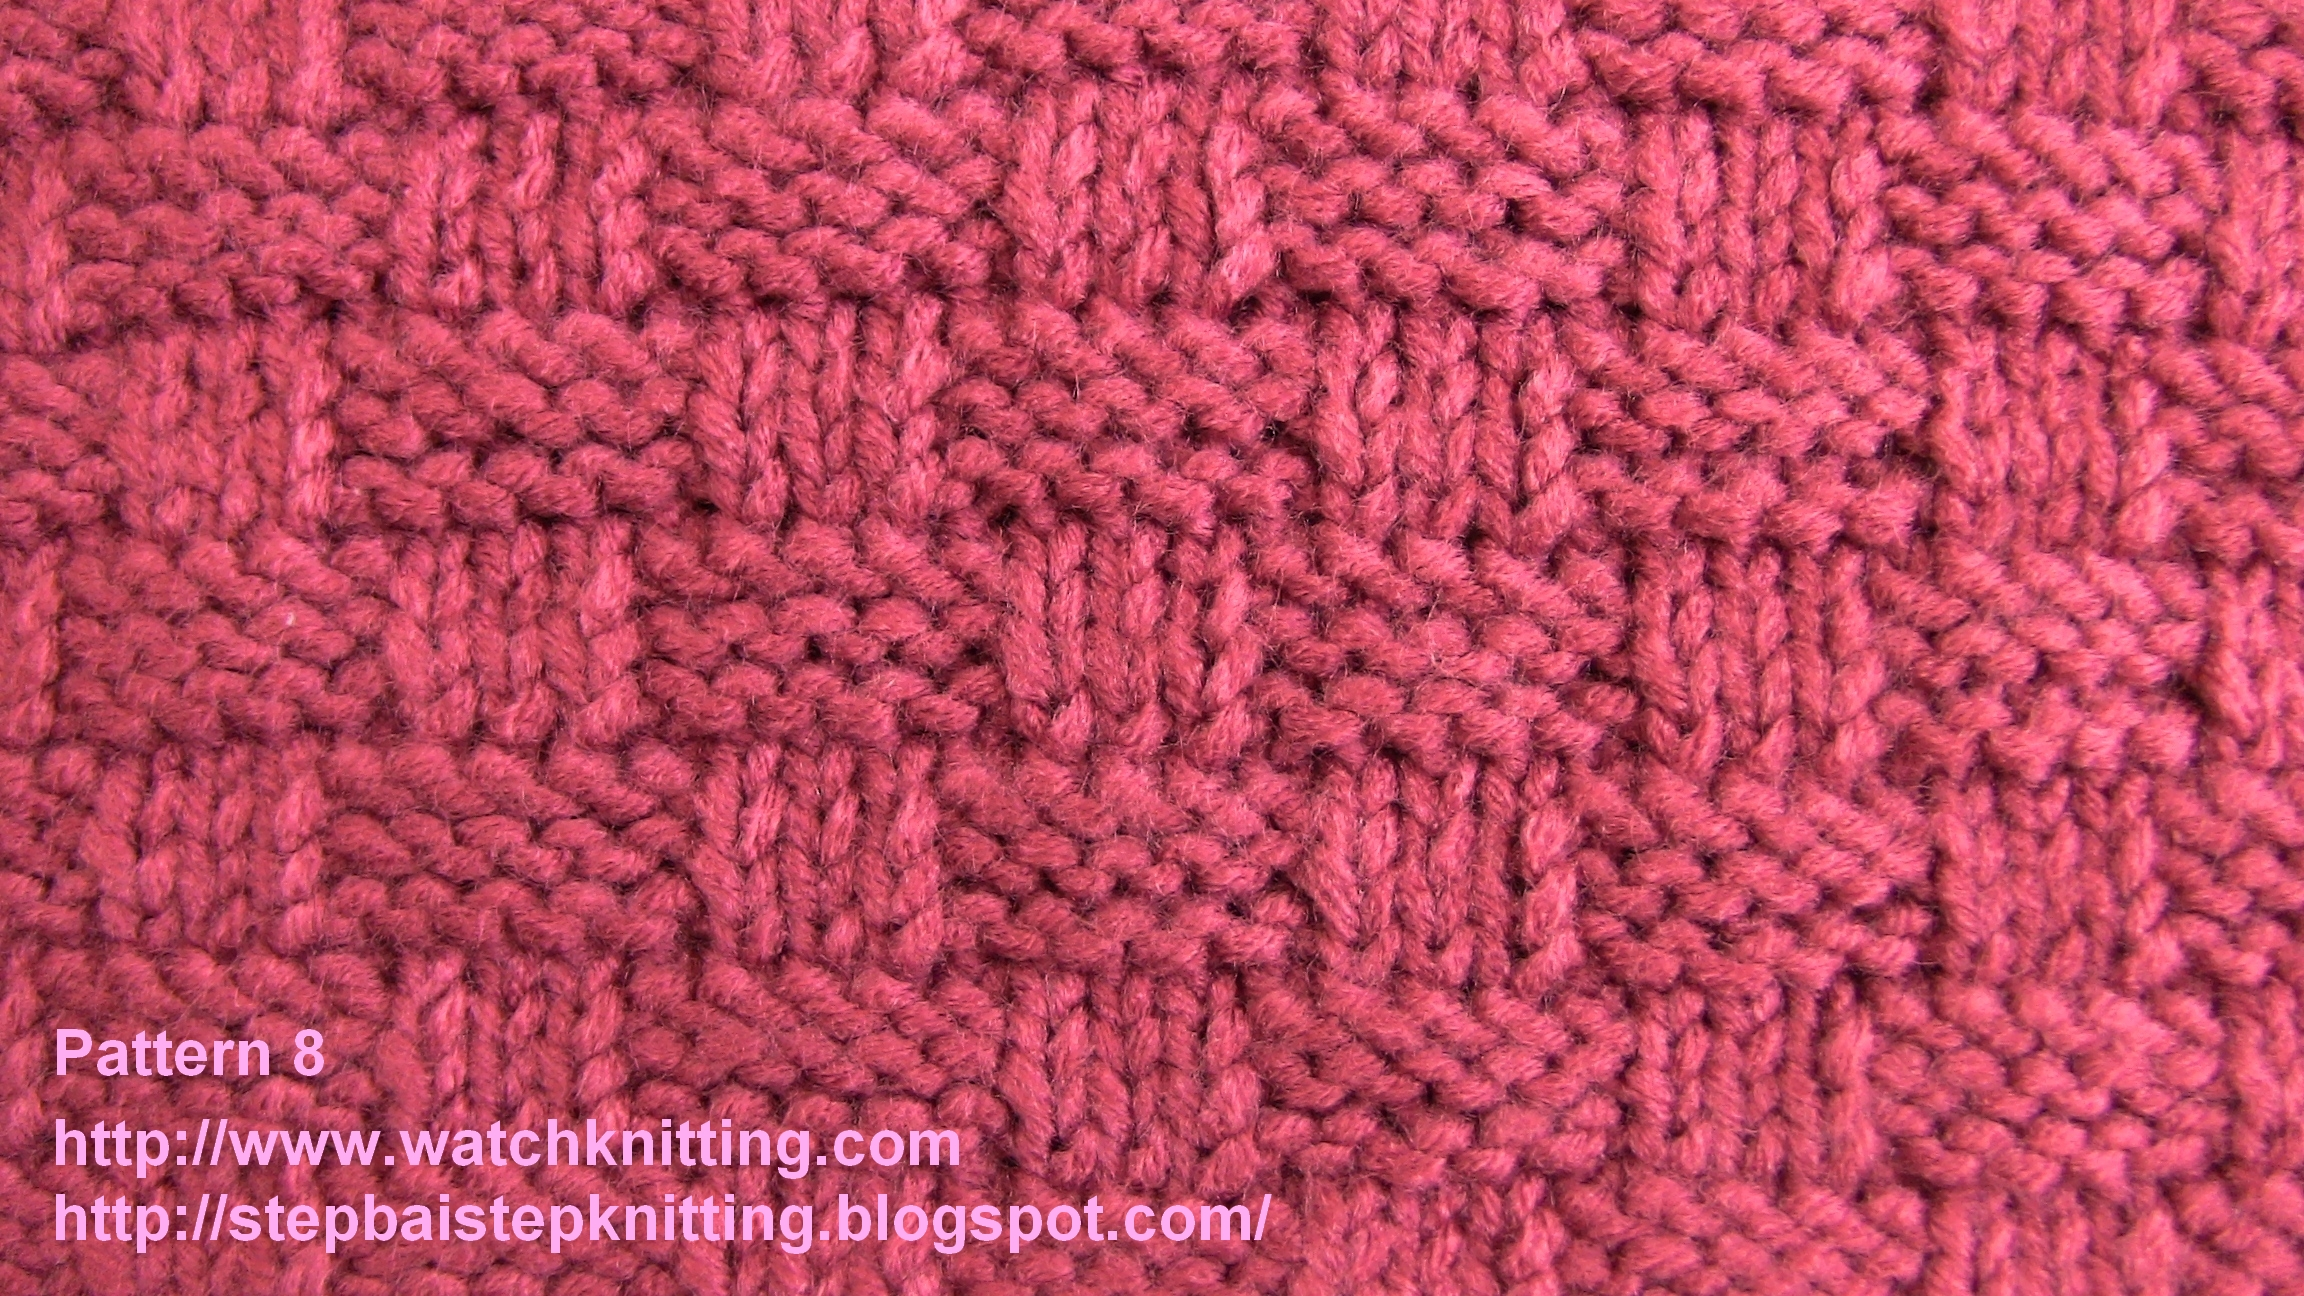 Stitch Patterns For Knitting : Basic Knitting Stitches Watch knitting